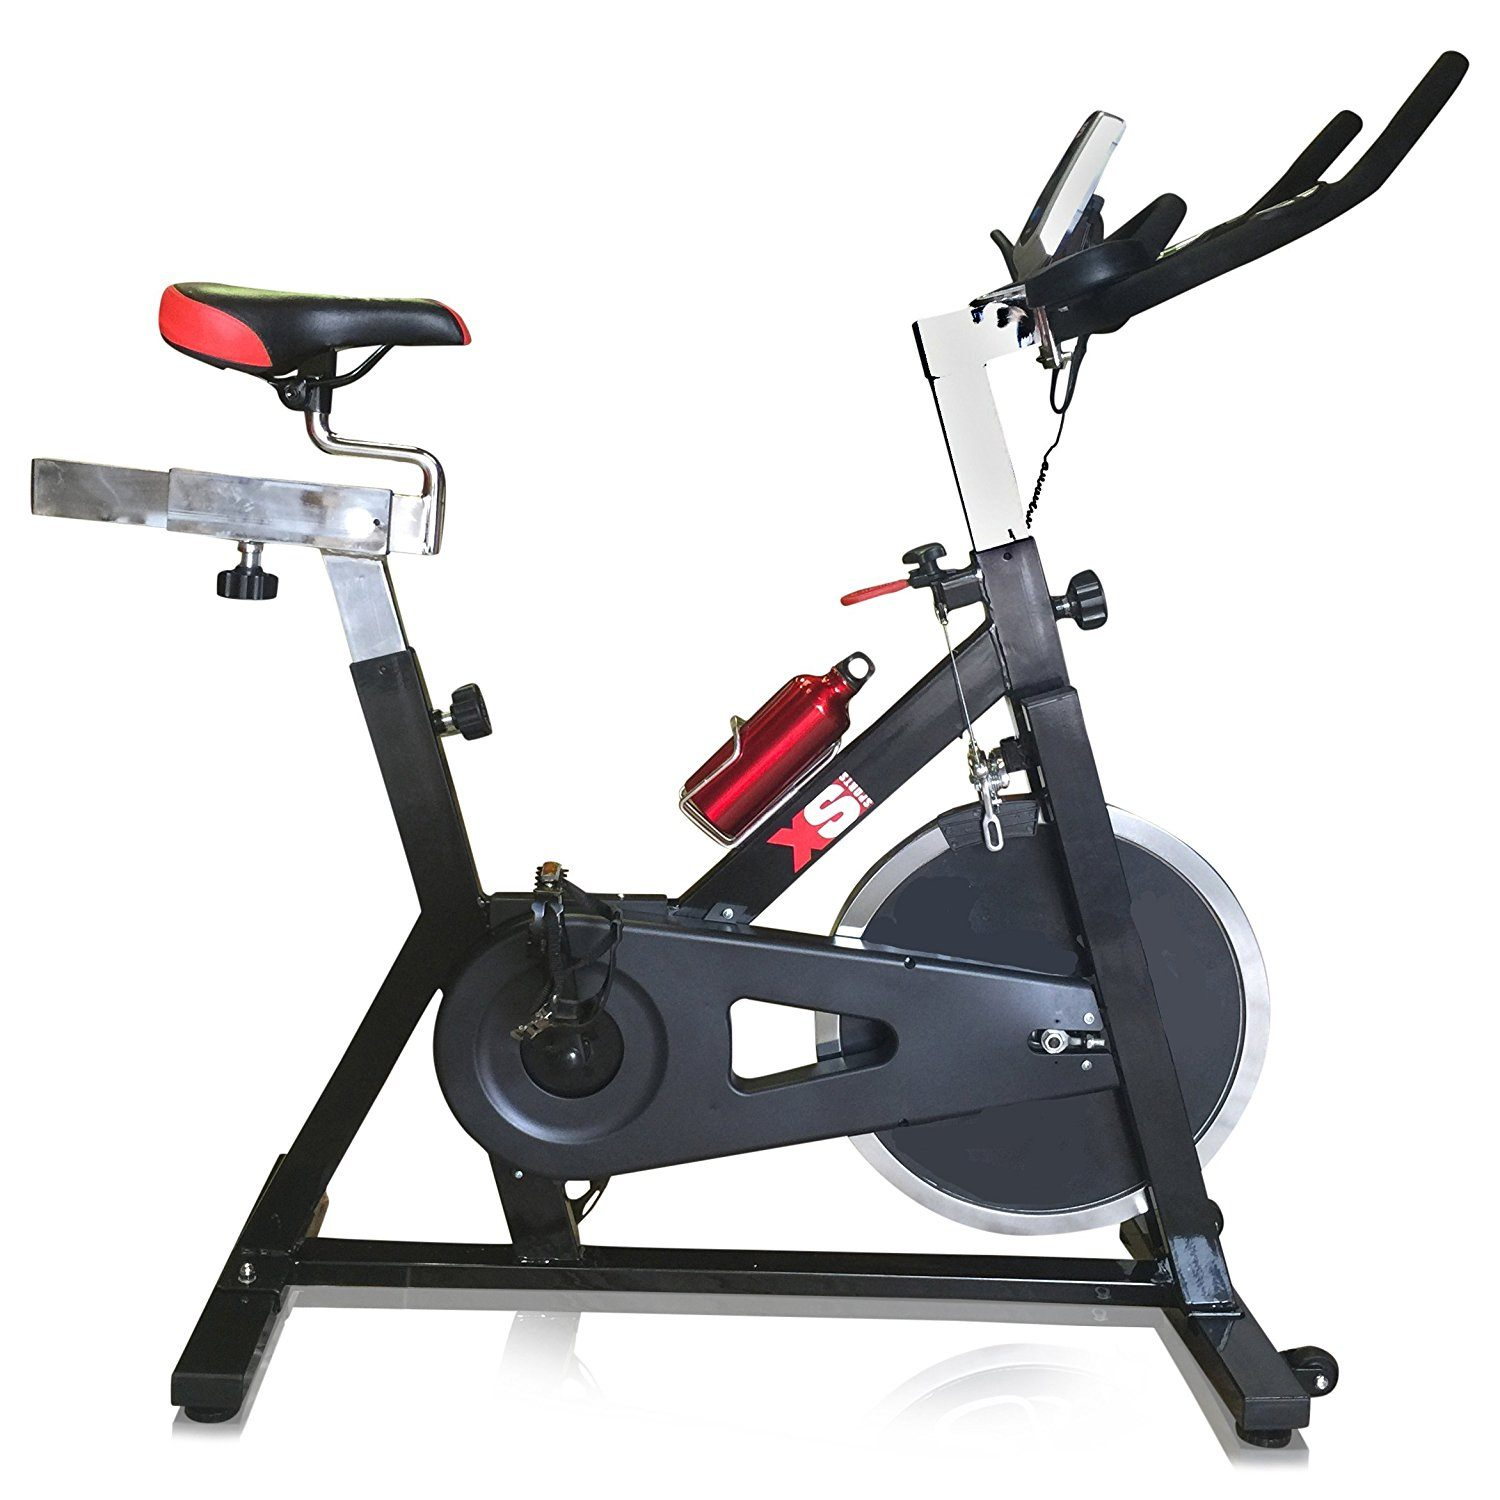 XS Sports Aerobic Indoor Training Exercise Bike Review